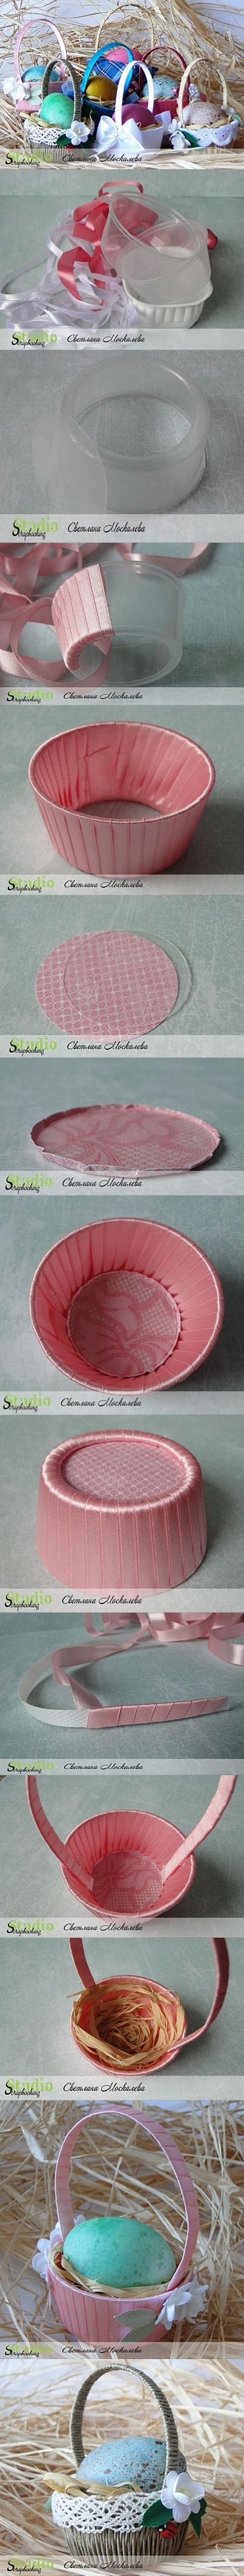 DIY Easter Basket with Disposable Plastic Bowl - http://www.healthdaily.me/diy-easter-basket-with-disposable-plastic-bowl/: